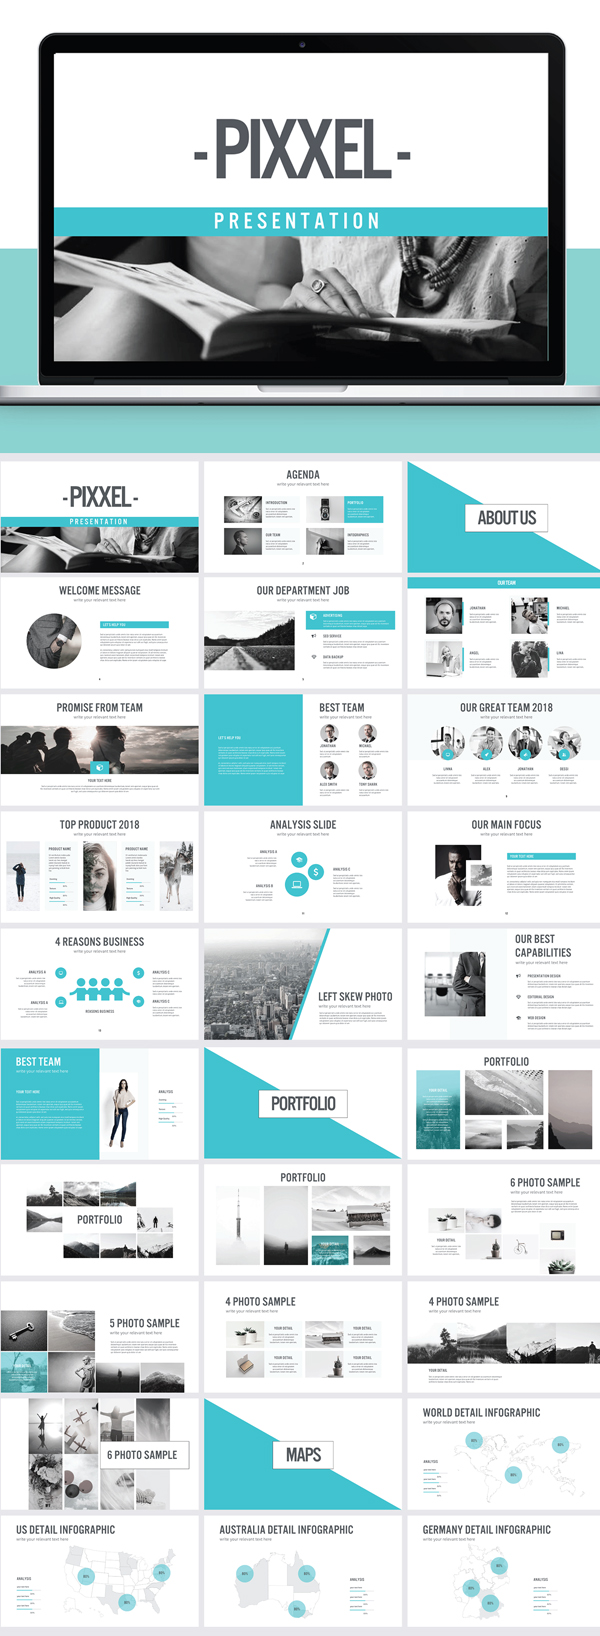 Freebie: Keynote Pixxel Presentation Template